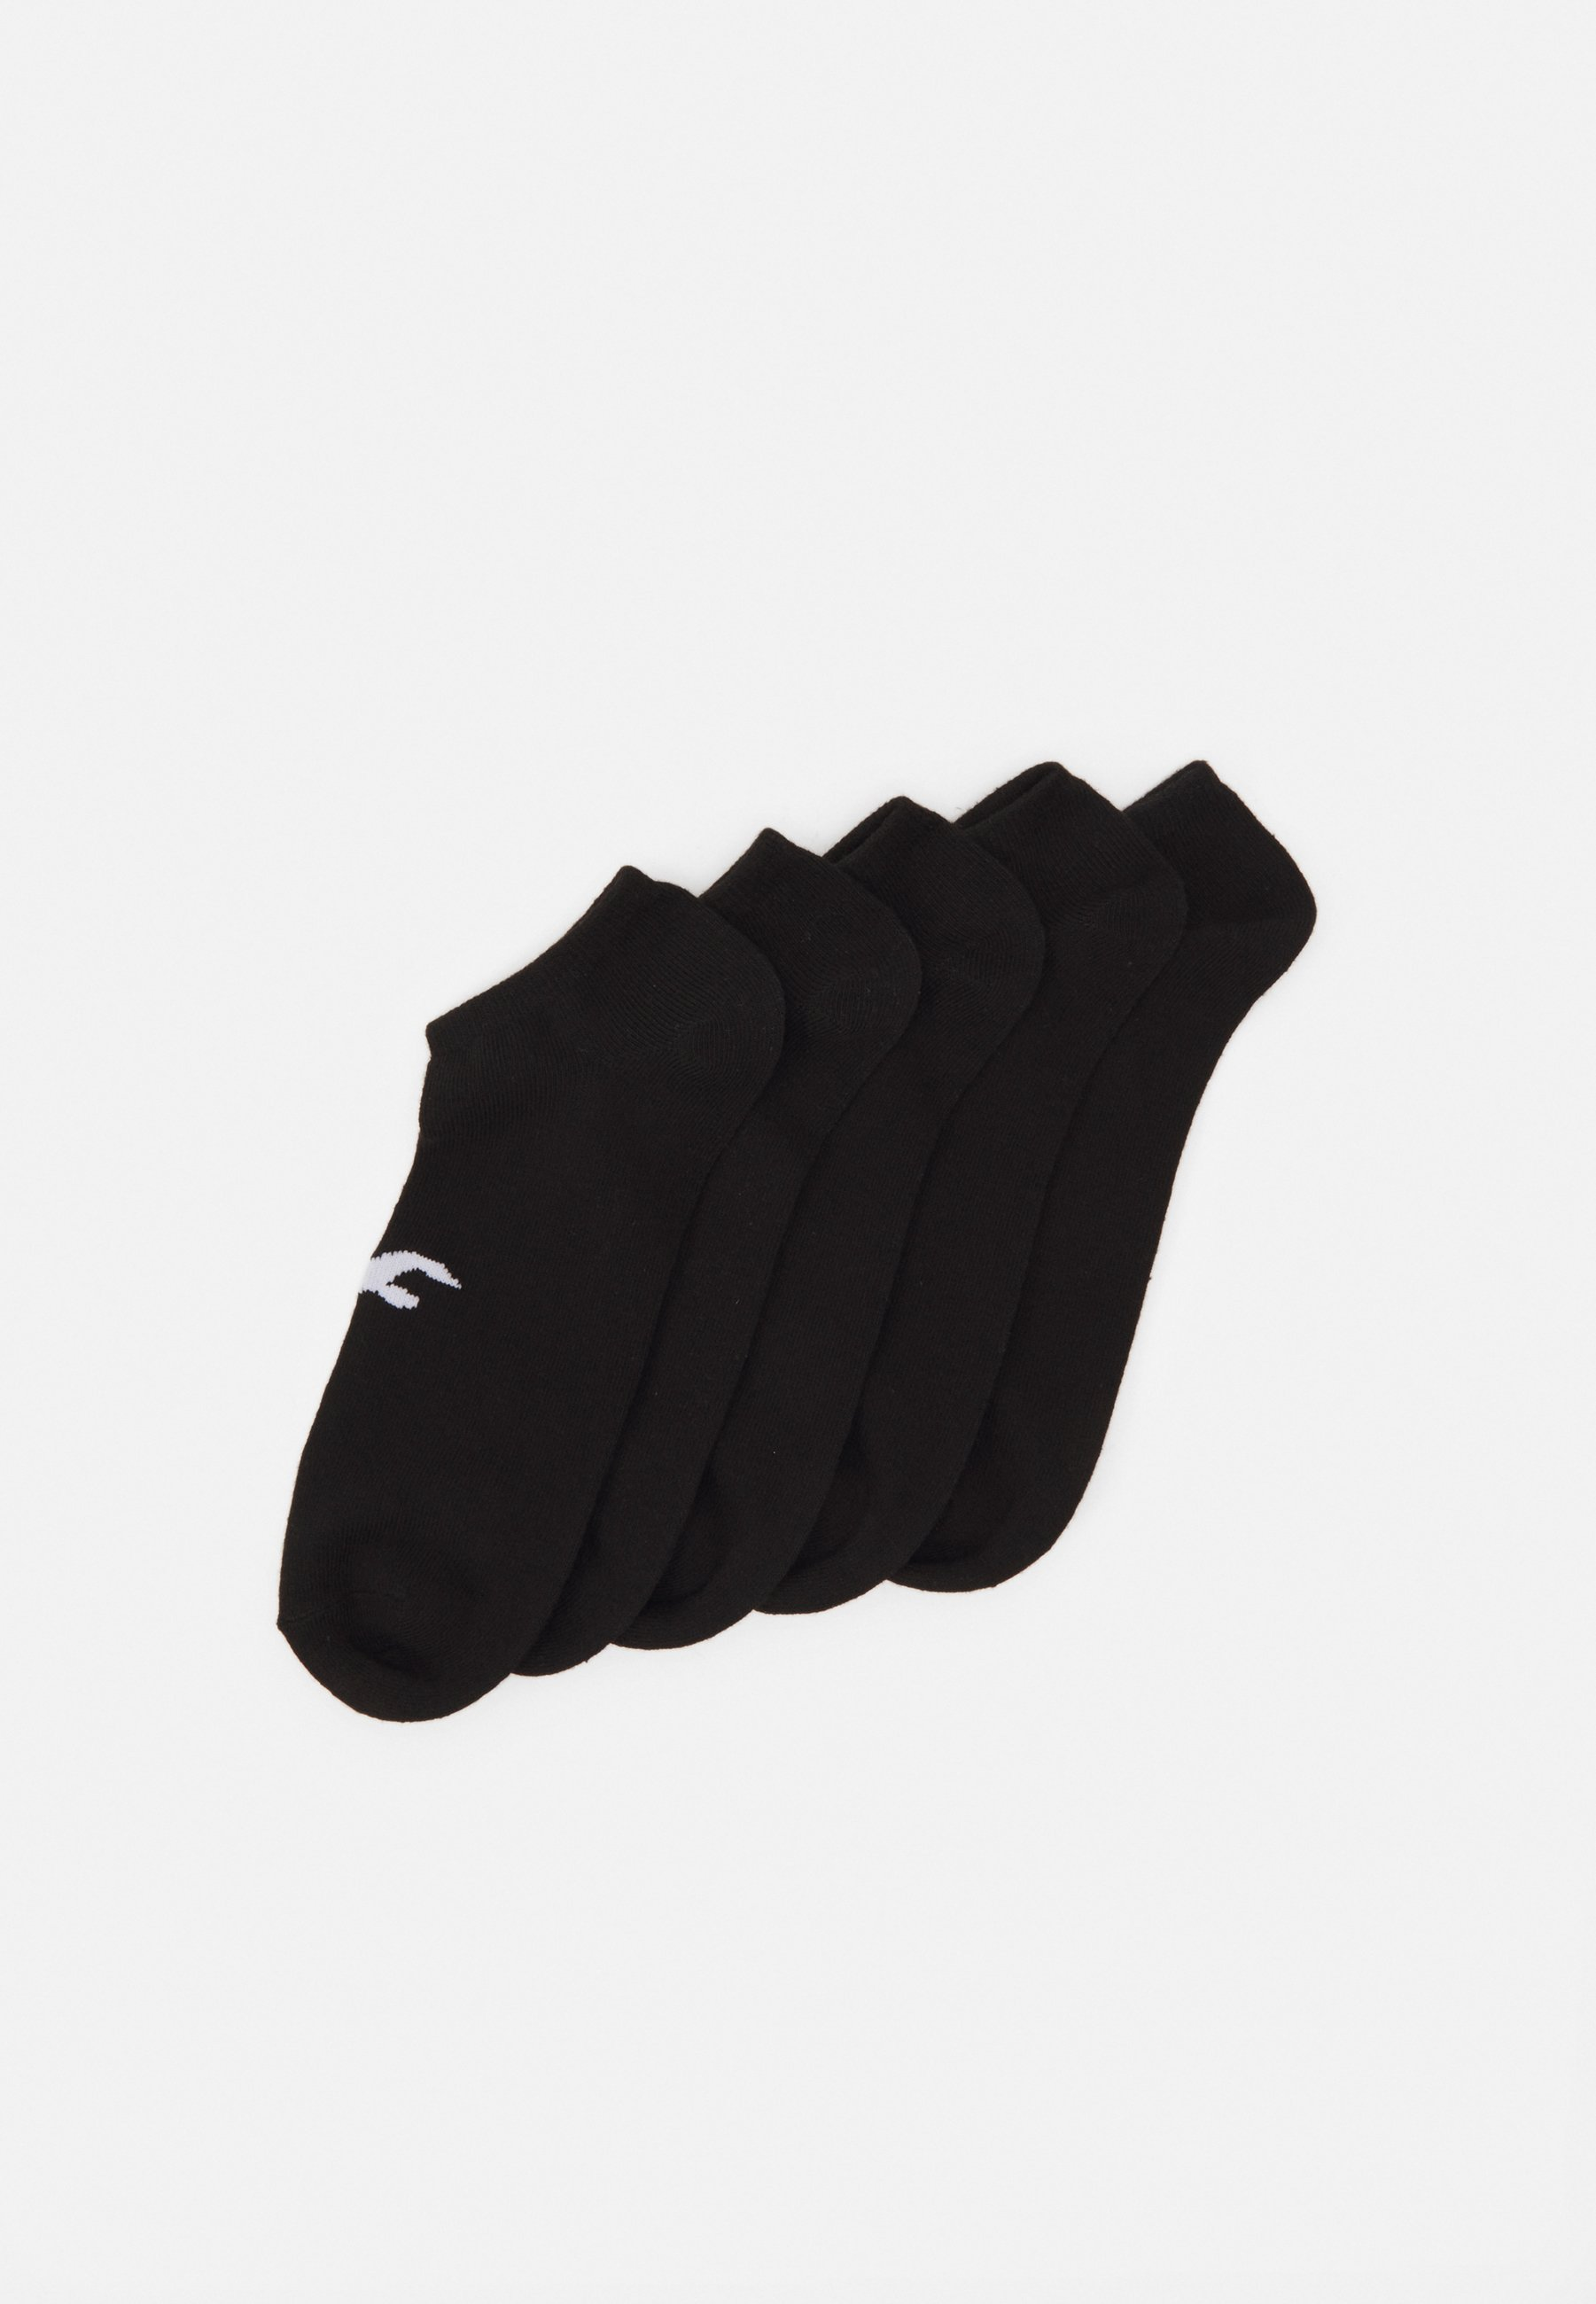 Donna NEUTRAL ANKLE SOCK 5 PACK UNISEX - Calze